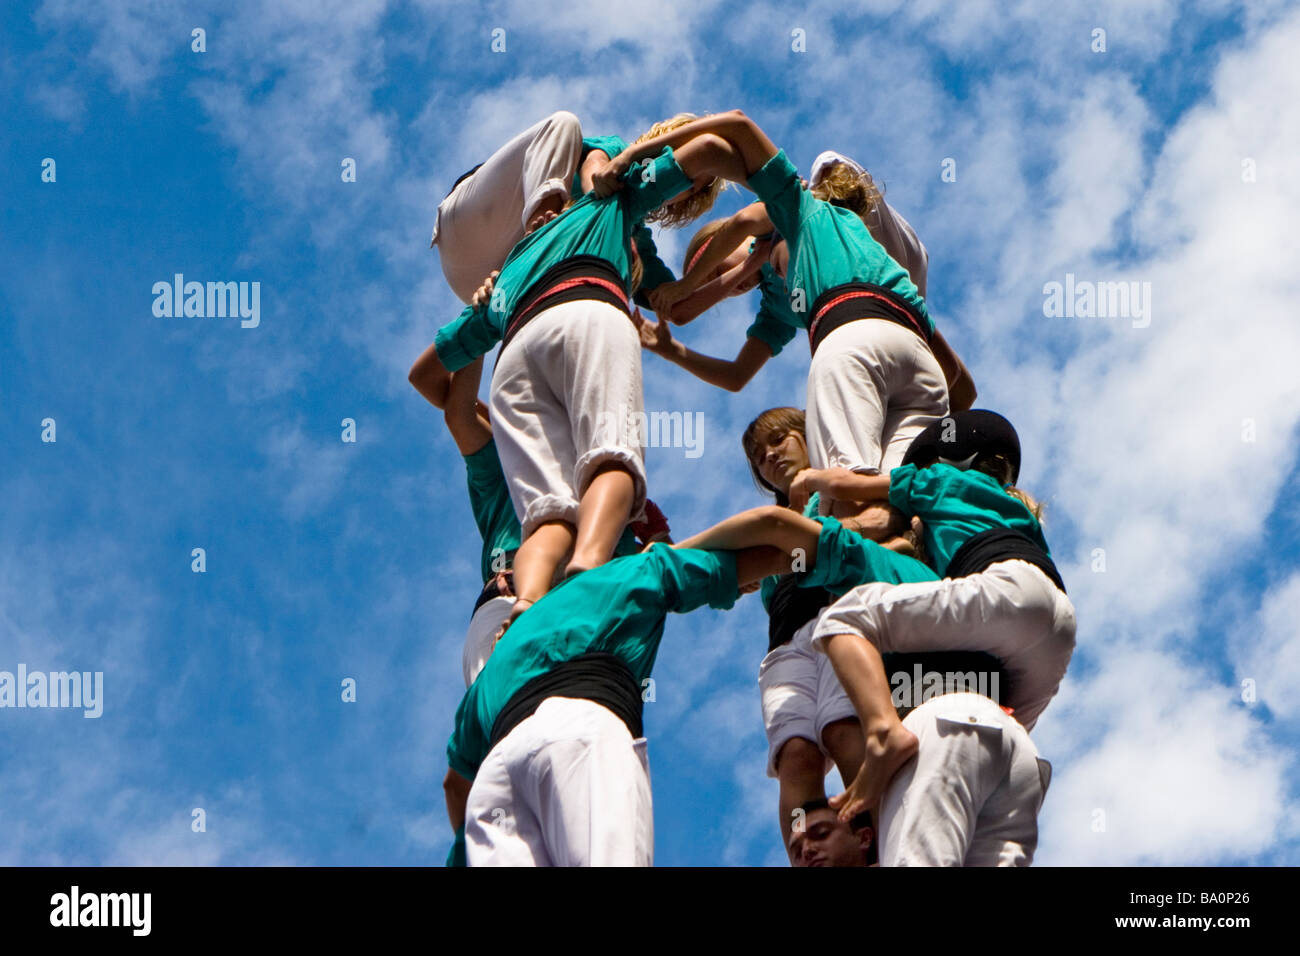 Castellers Competition during the La Merce Festival in Placa de Sant Jaume Barcelona Spain, team Vila Franca - Stock Image